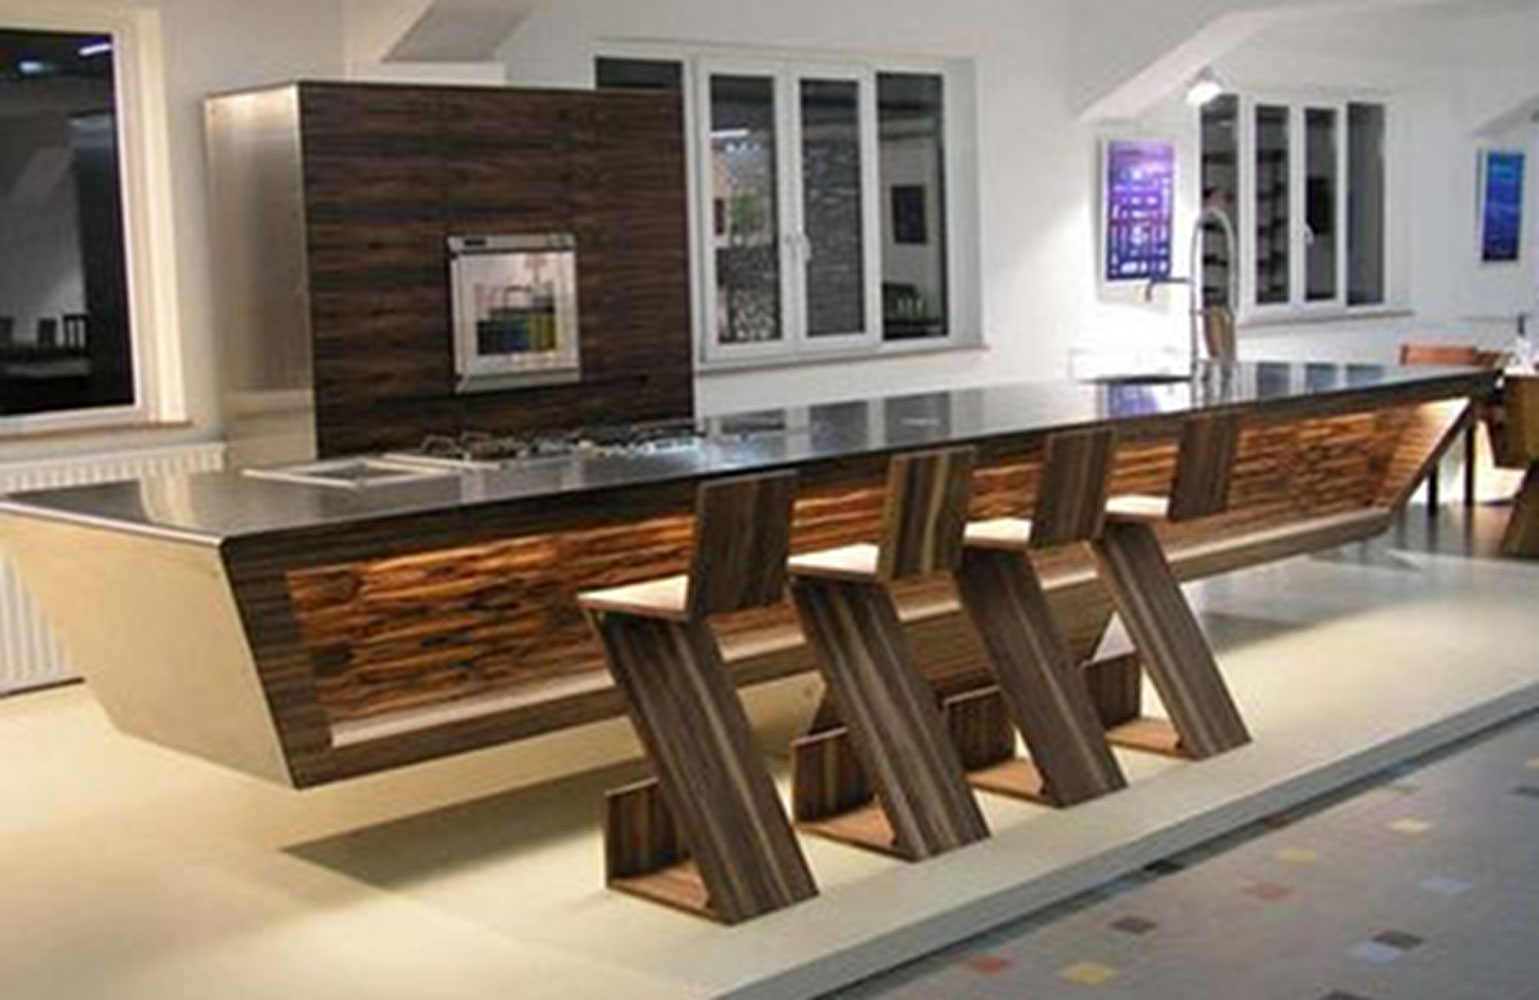 Metal wood a match made in interior design heaven for Interior design ideas for kitchen